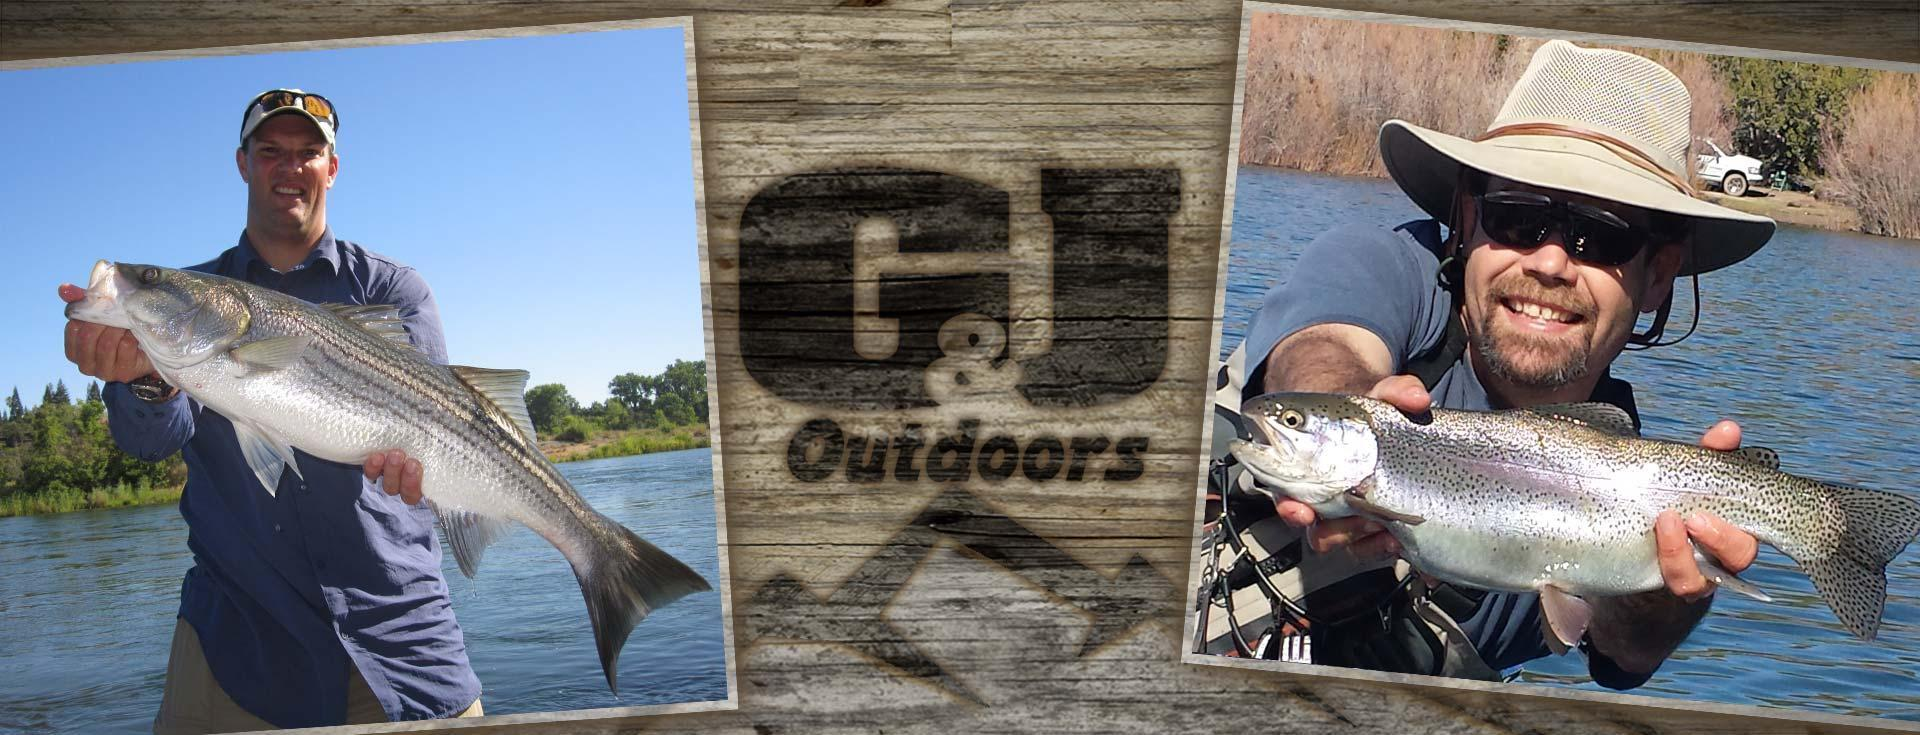 G j outdoors nevada california guided hunting trips for Fishing trips in california